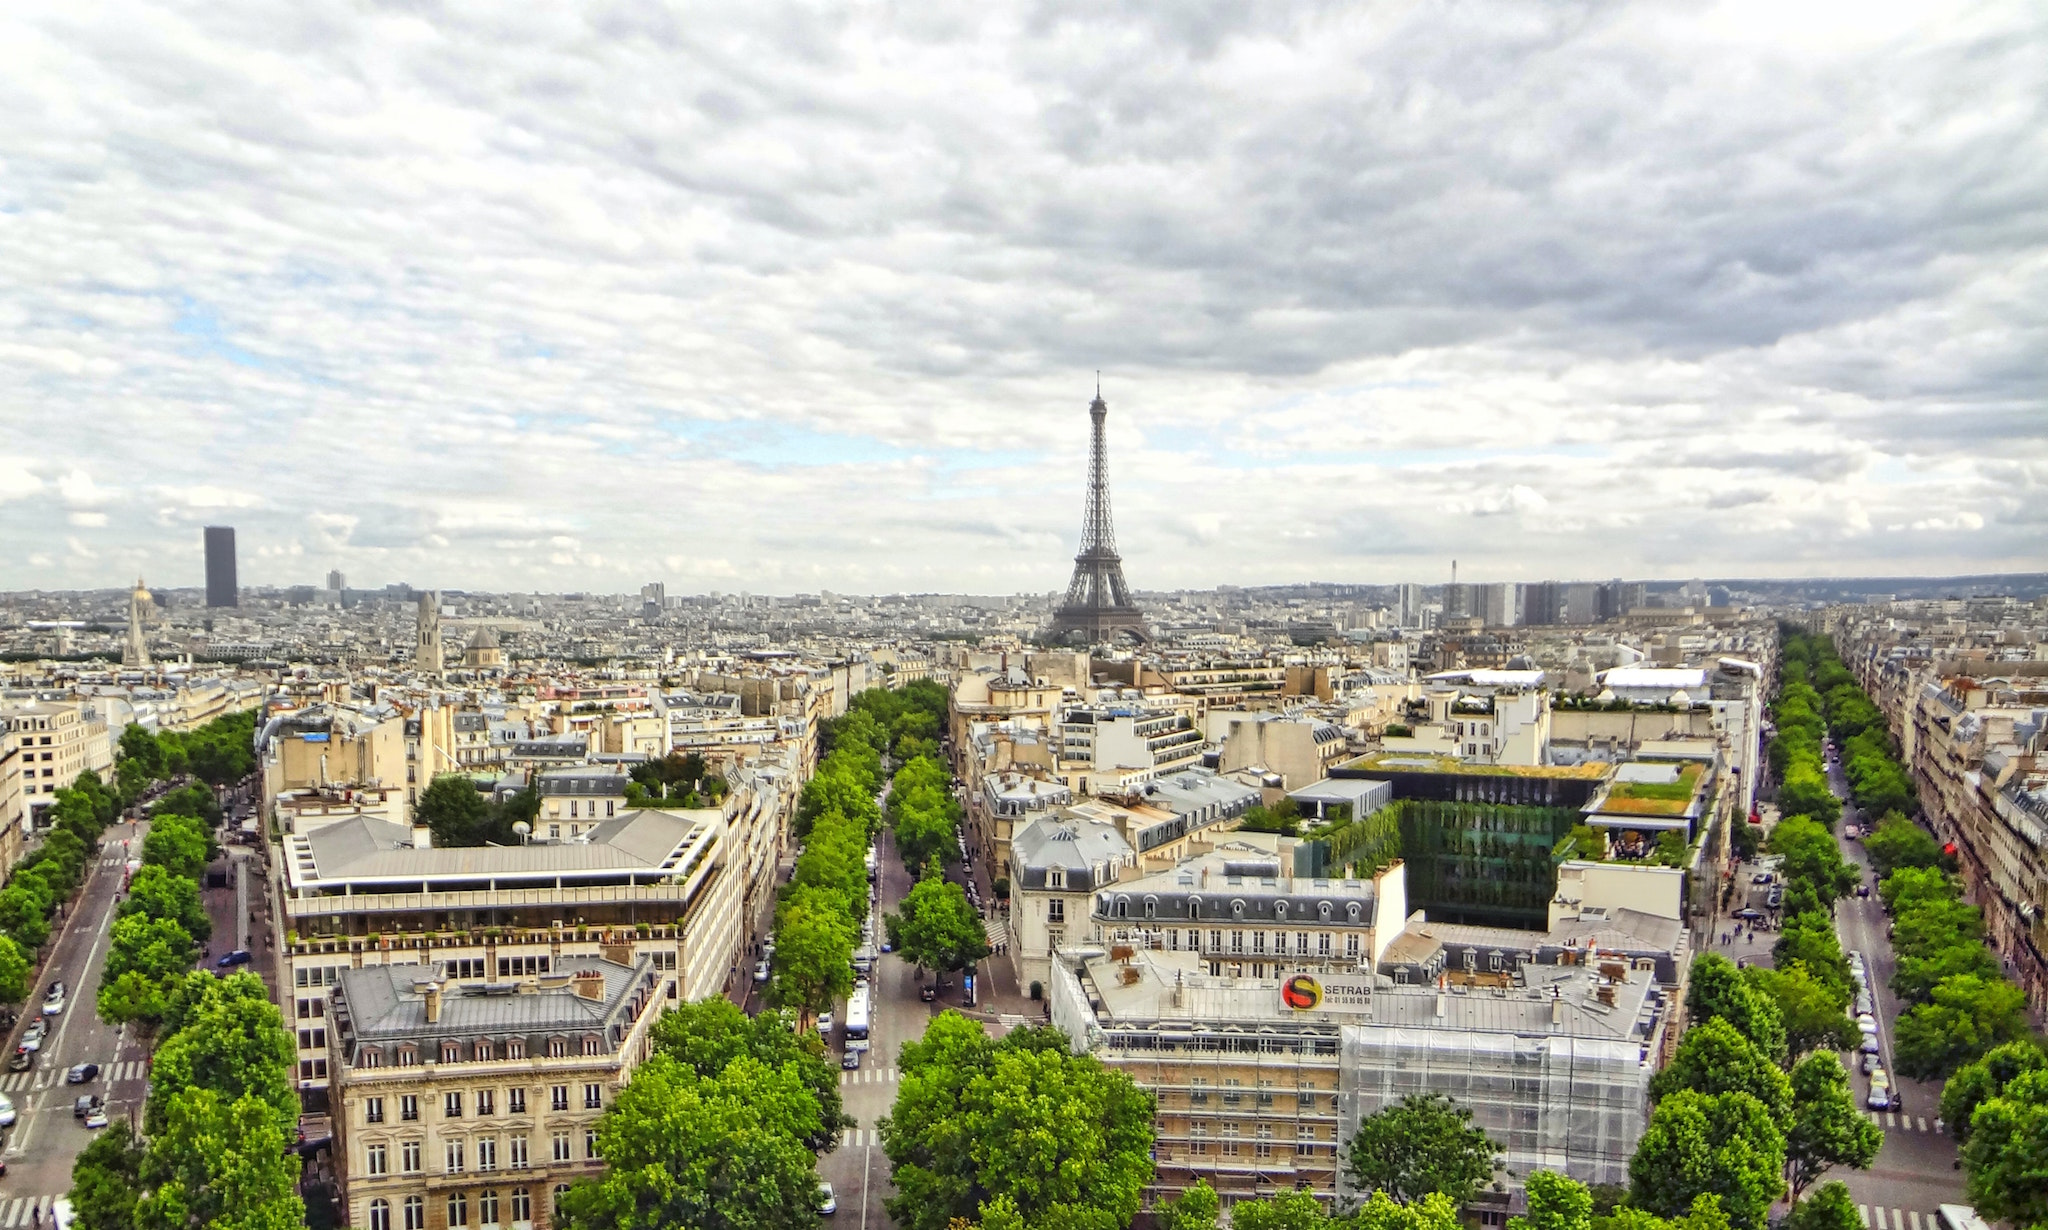 A view of Parisian rooftops, tree-lined streets and the Eiffel tower is visible from a high view.